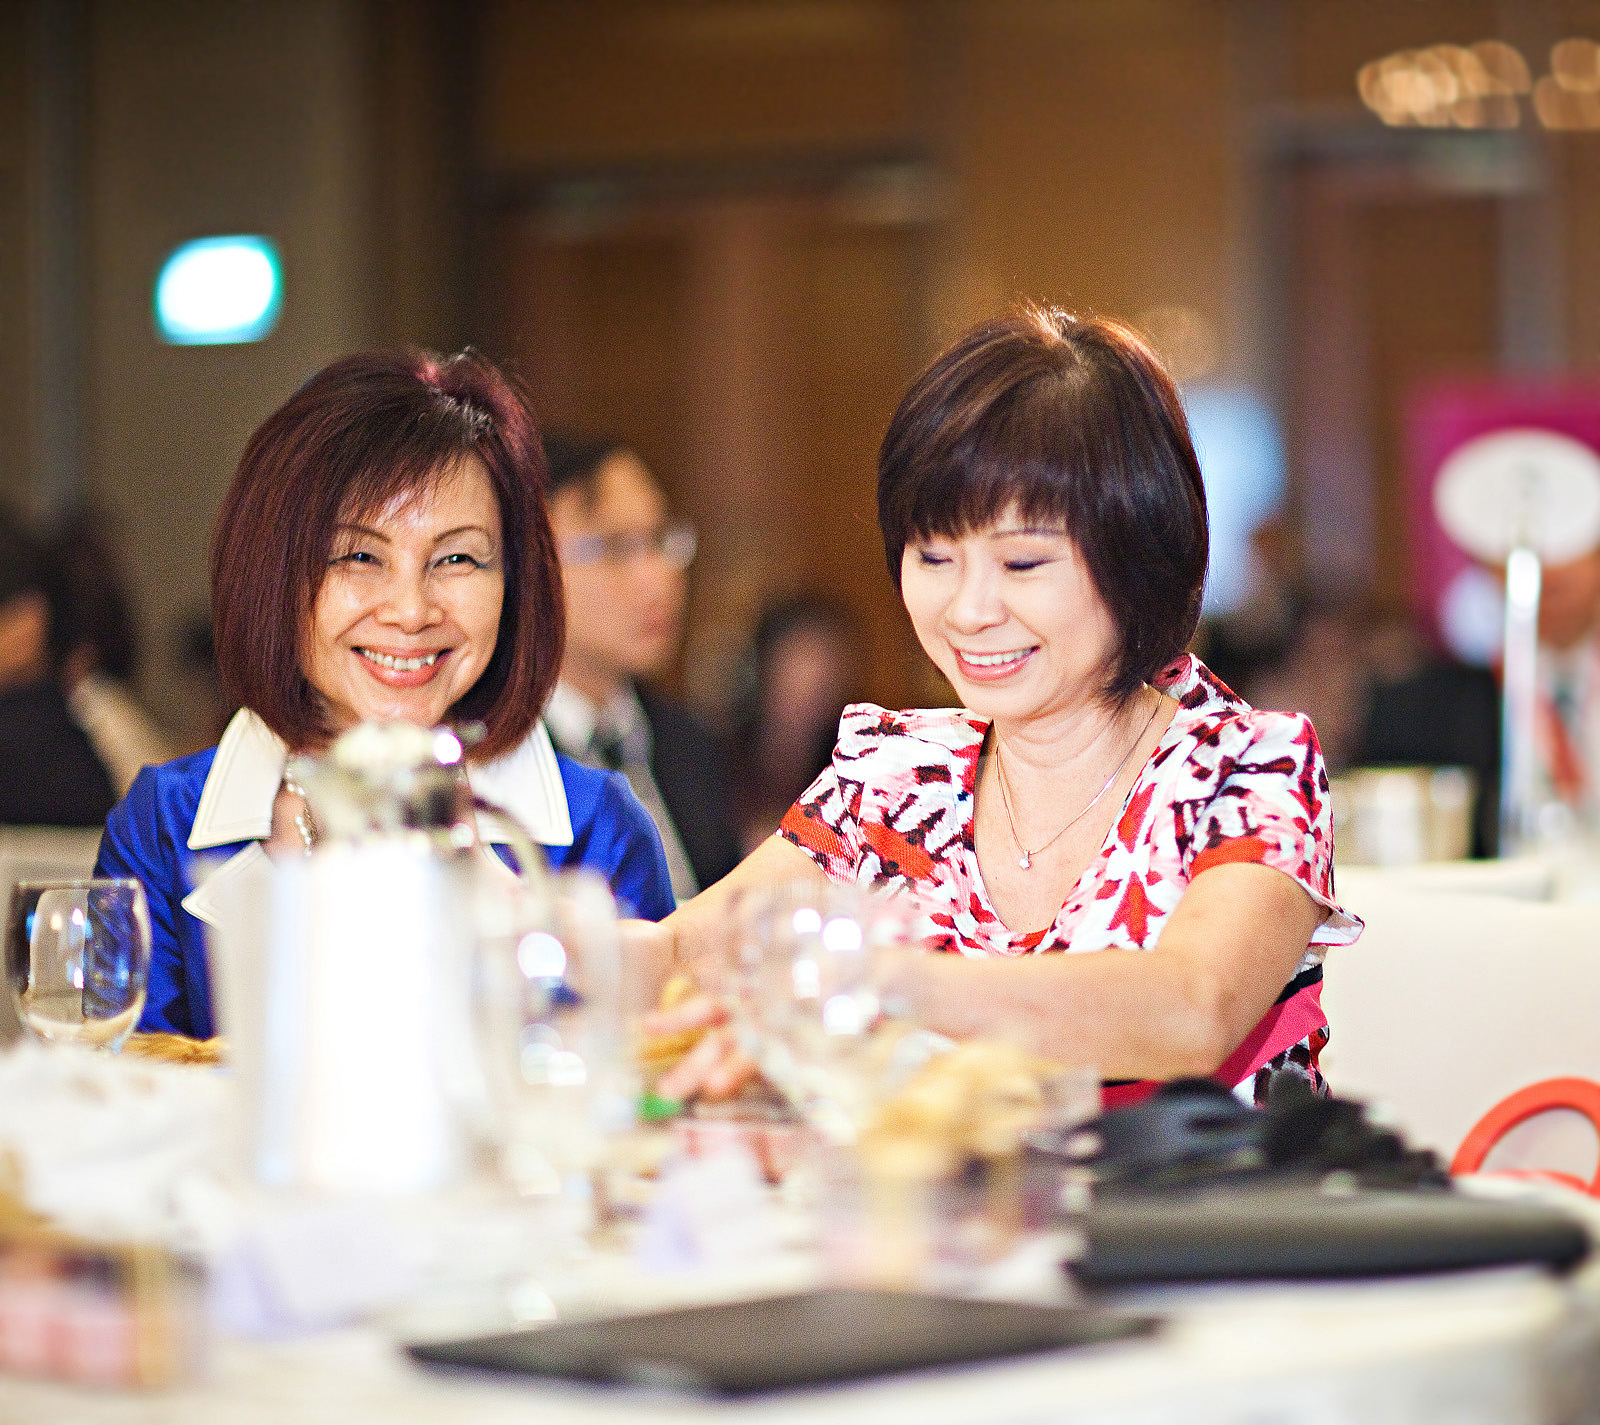 Event Photography, Corporate Photography by Halcyon Media